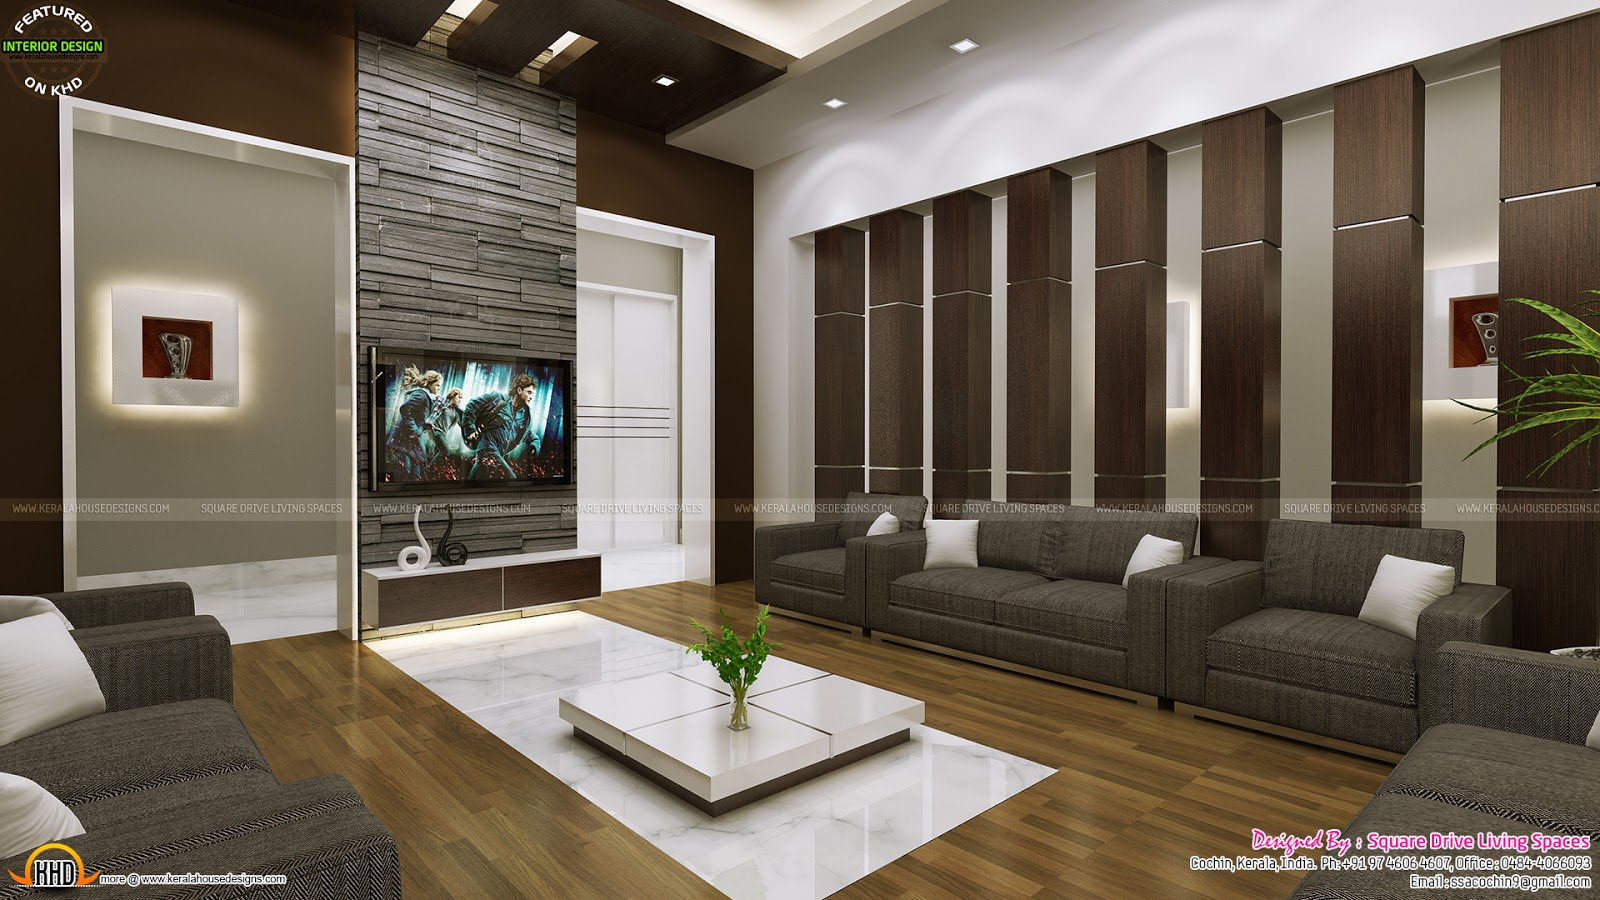 Attractive home interior ideas kerala home design and for House plans interior photos